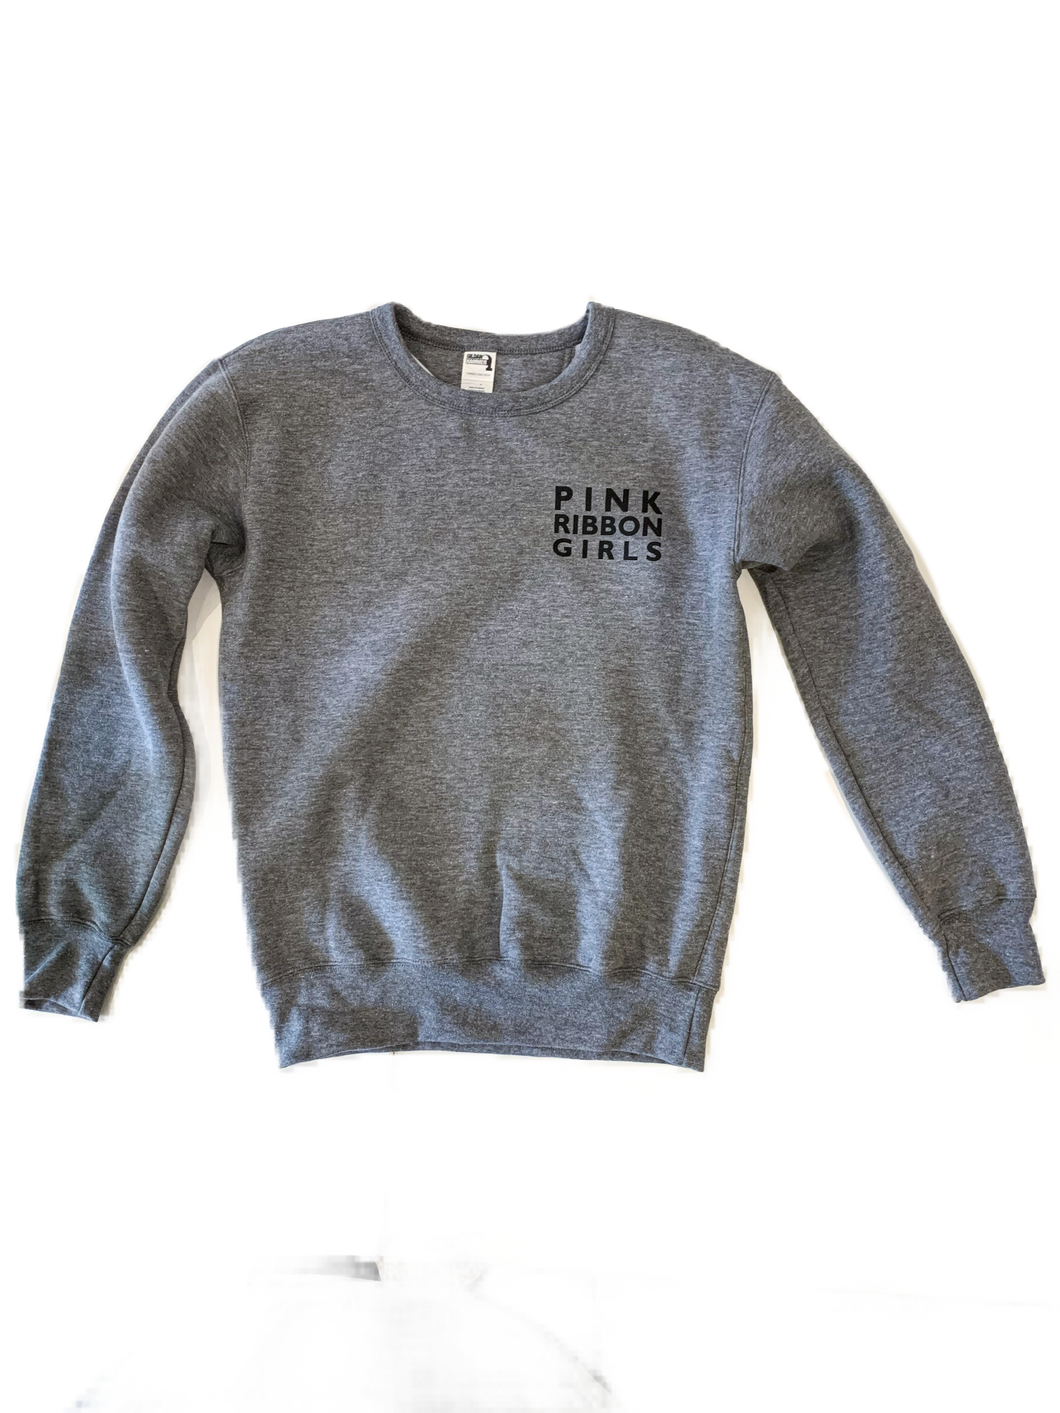 No One Travels This Road Sweatshirt